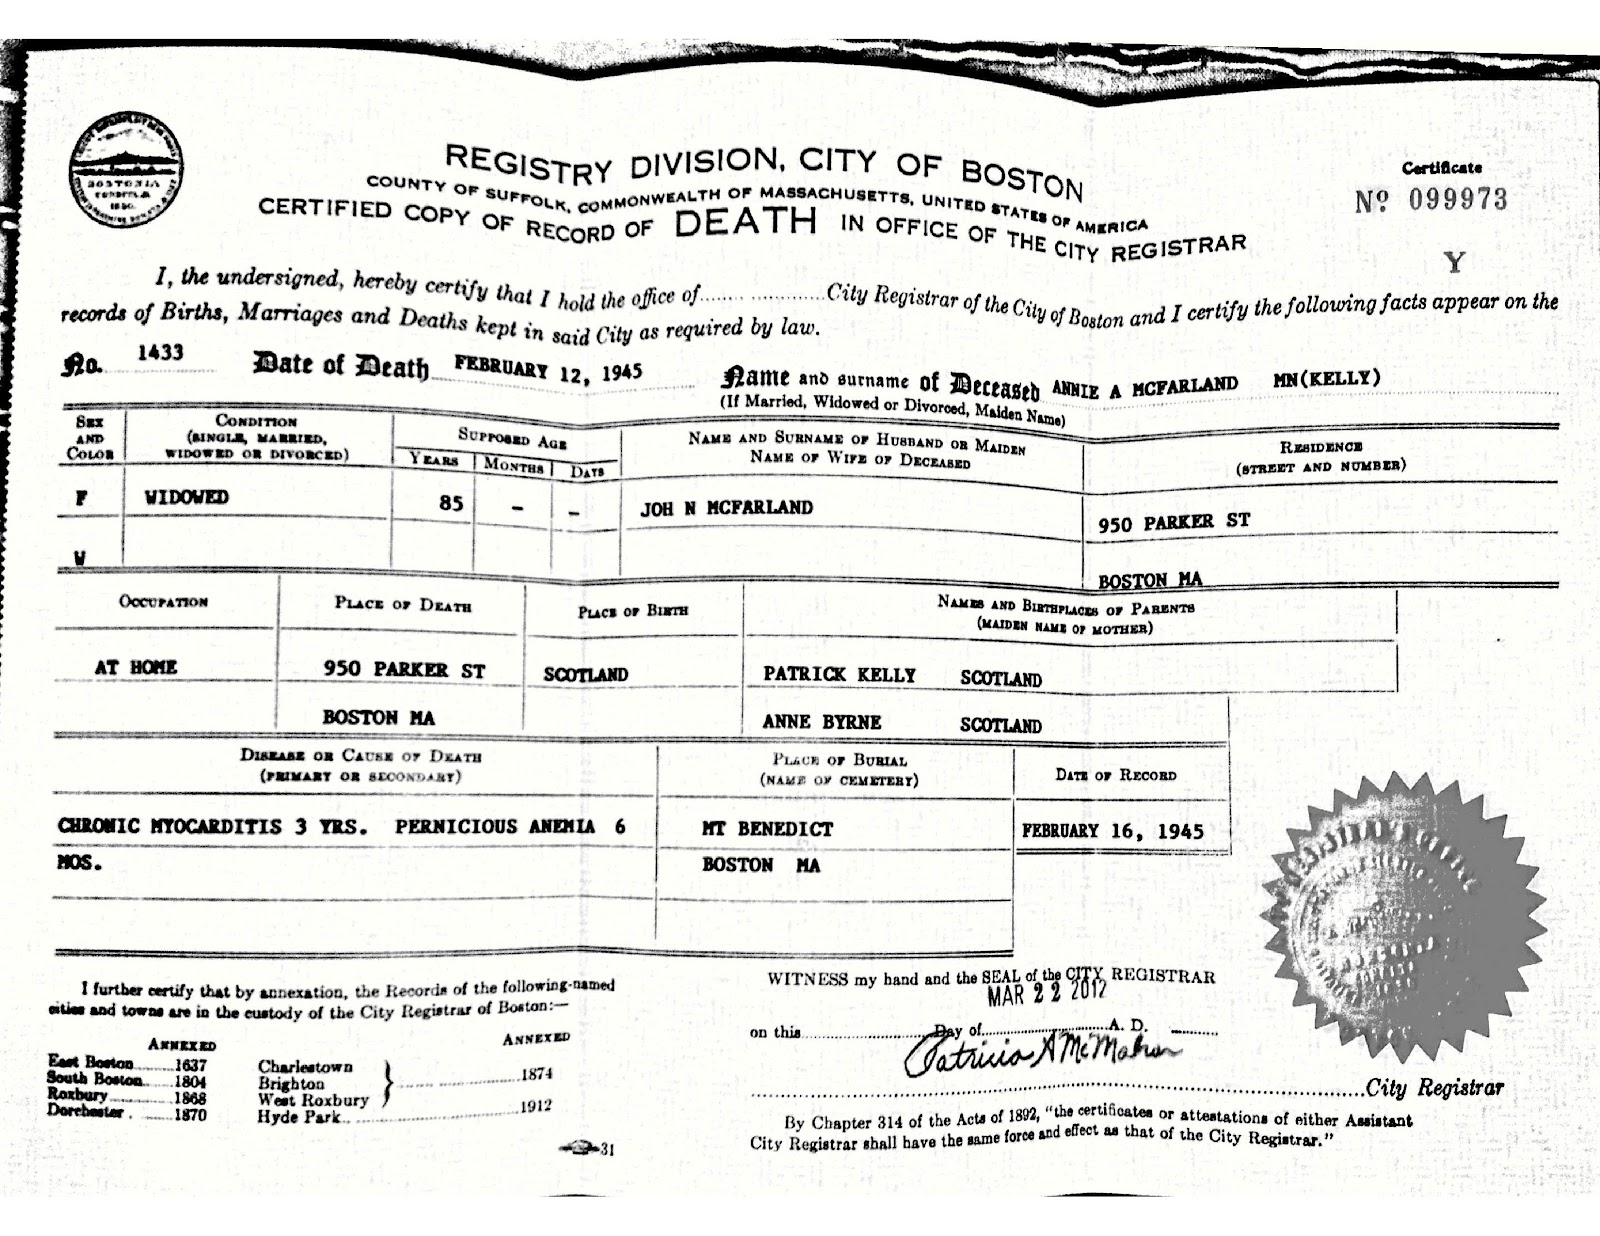 """More Birth Certificate Questions Raised >> West in New England: """"IN SUNSHINE OR IN SHADOW"""" 3"""